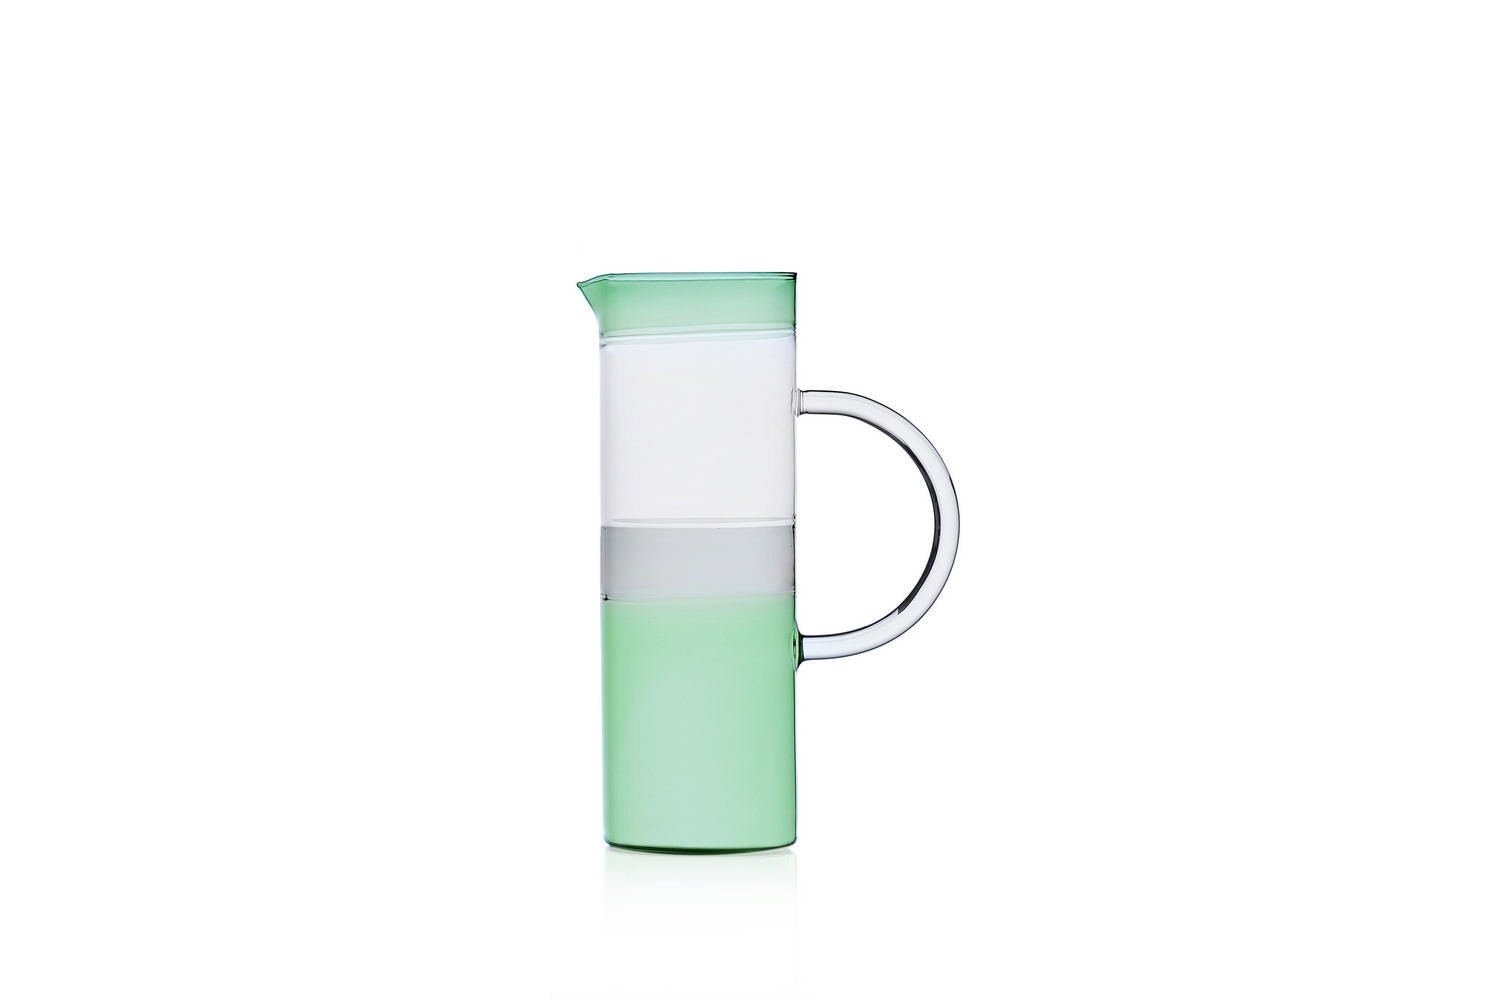 Tequila Sunrise Jug Cylindrical - Green/Smoke/Clear by Mist-o for Ichendorf Milano